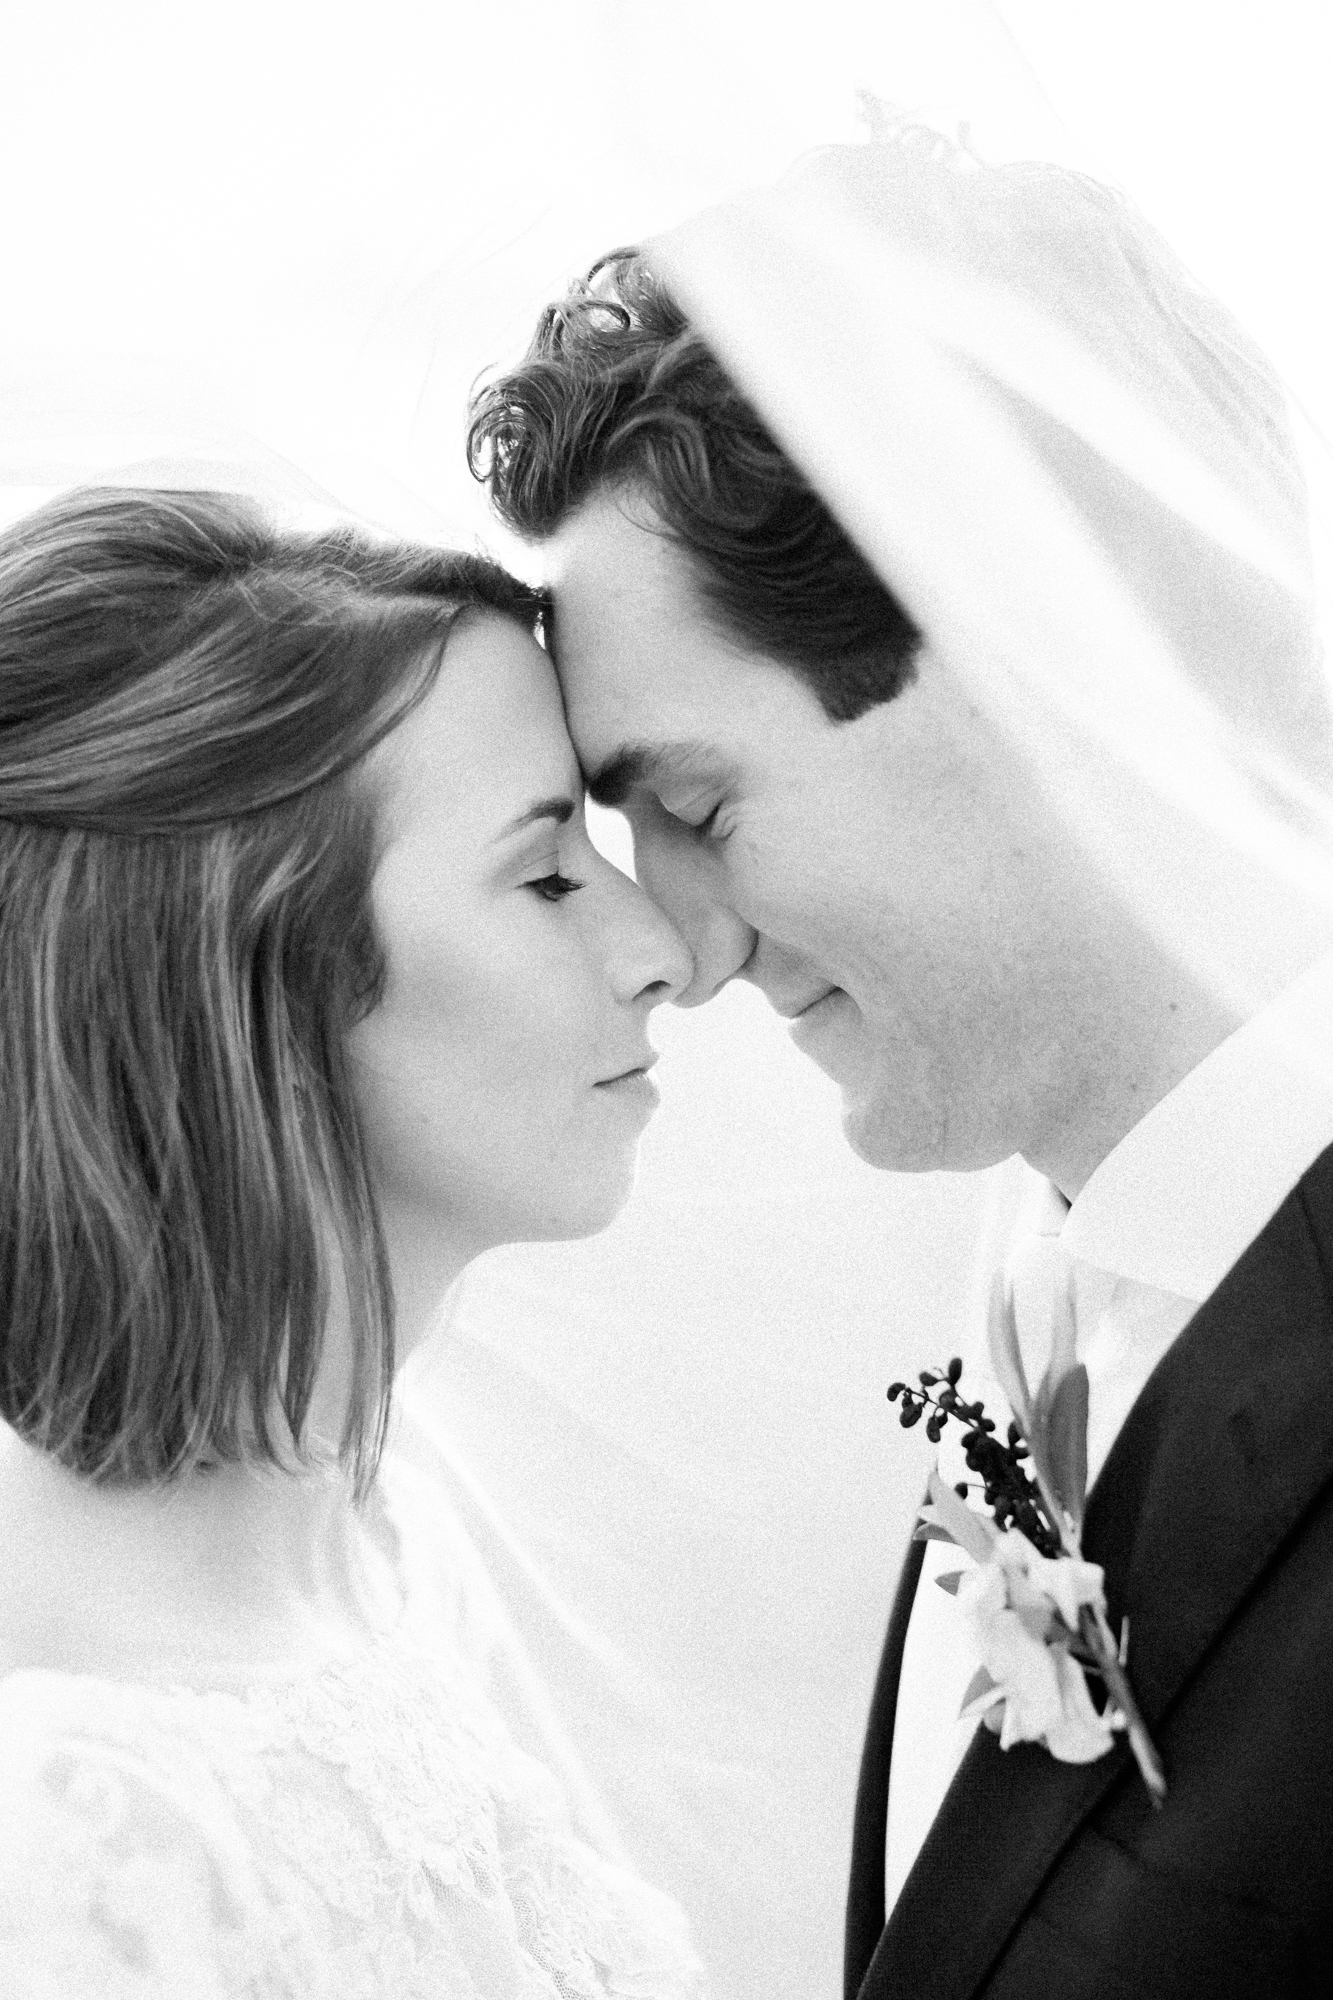 bride and groom closeup in black and white